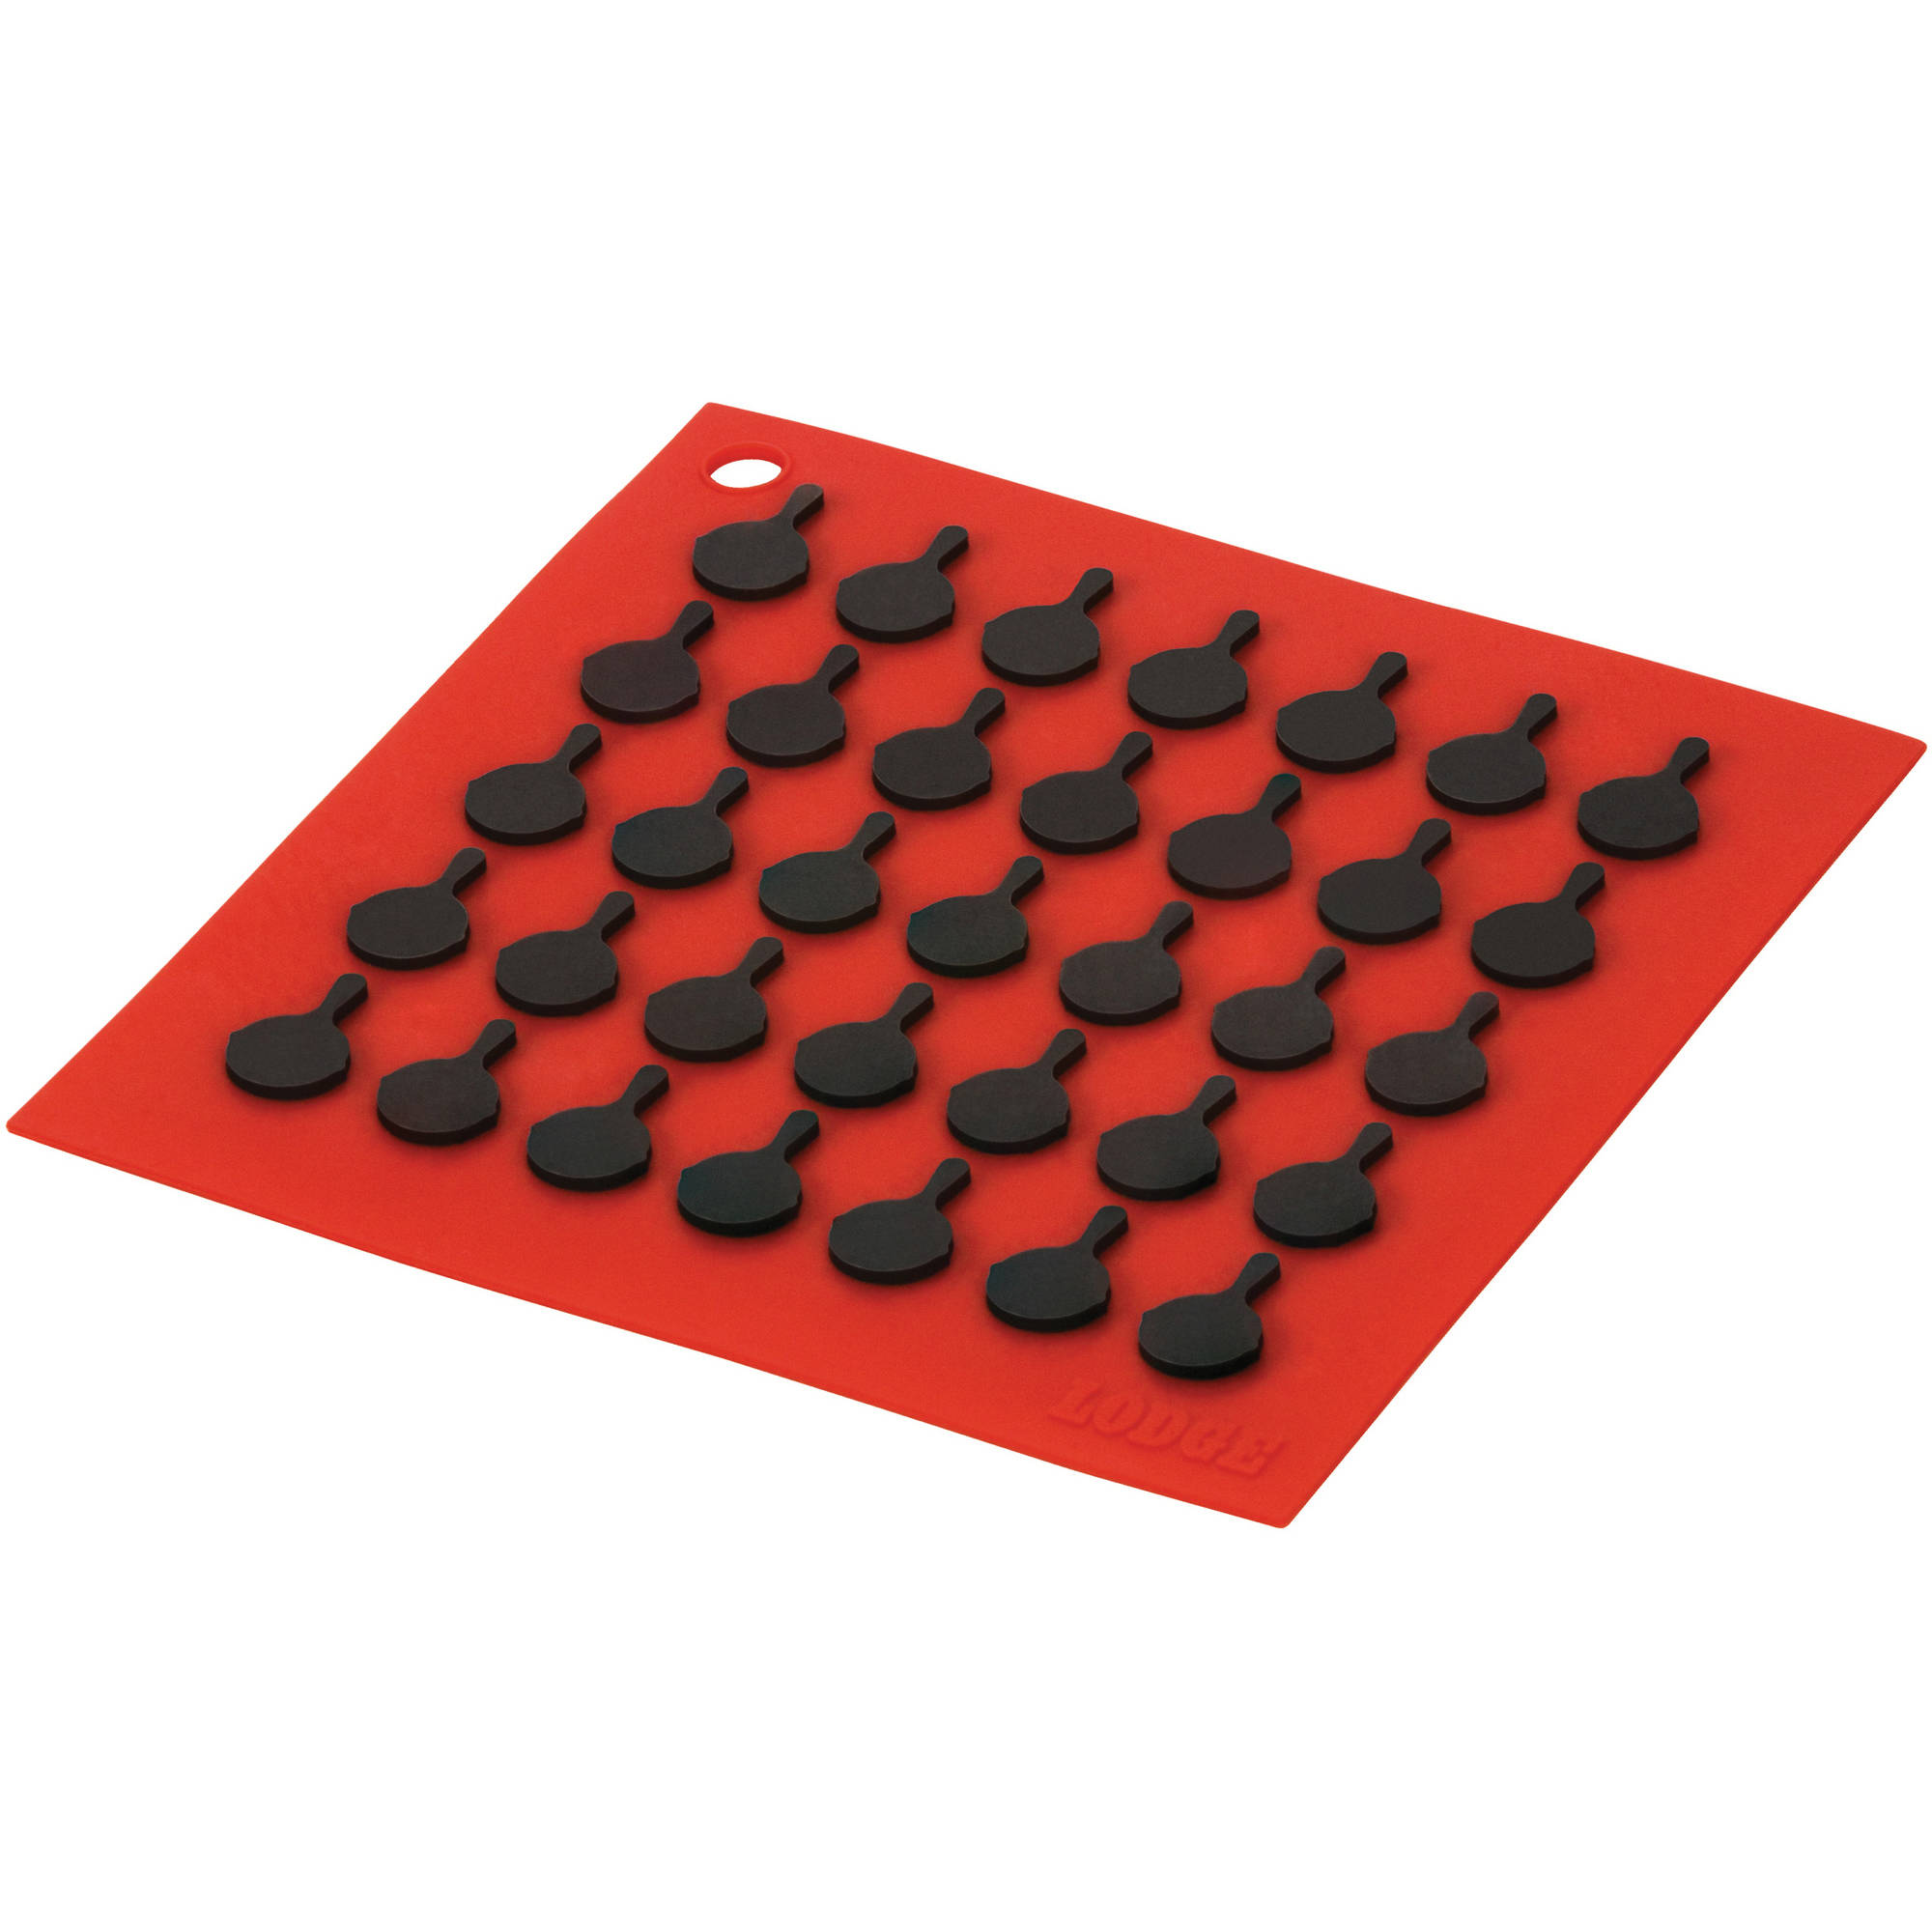 Lodge Silicone Trivet with Black Skillets